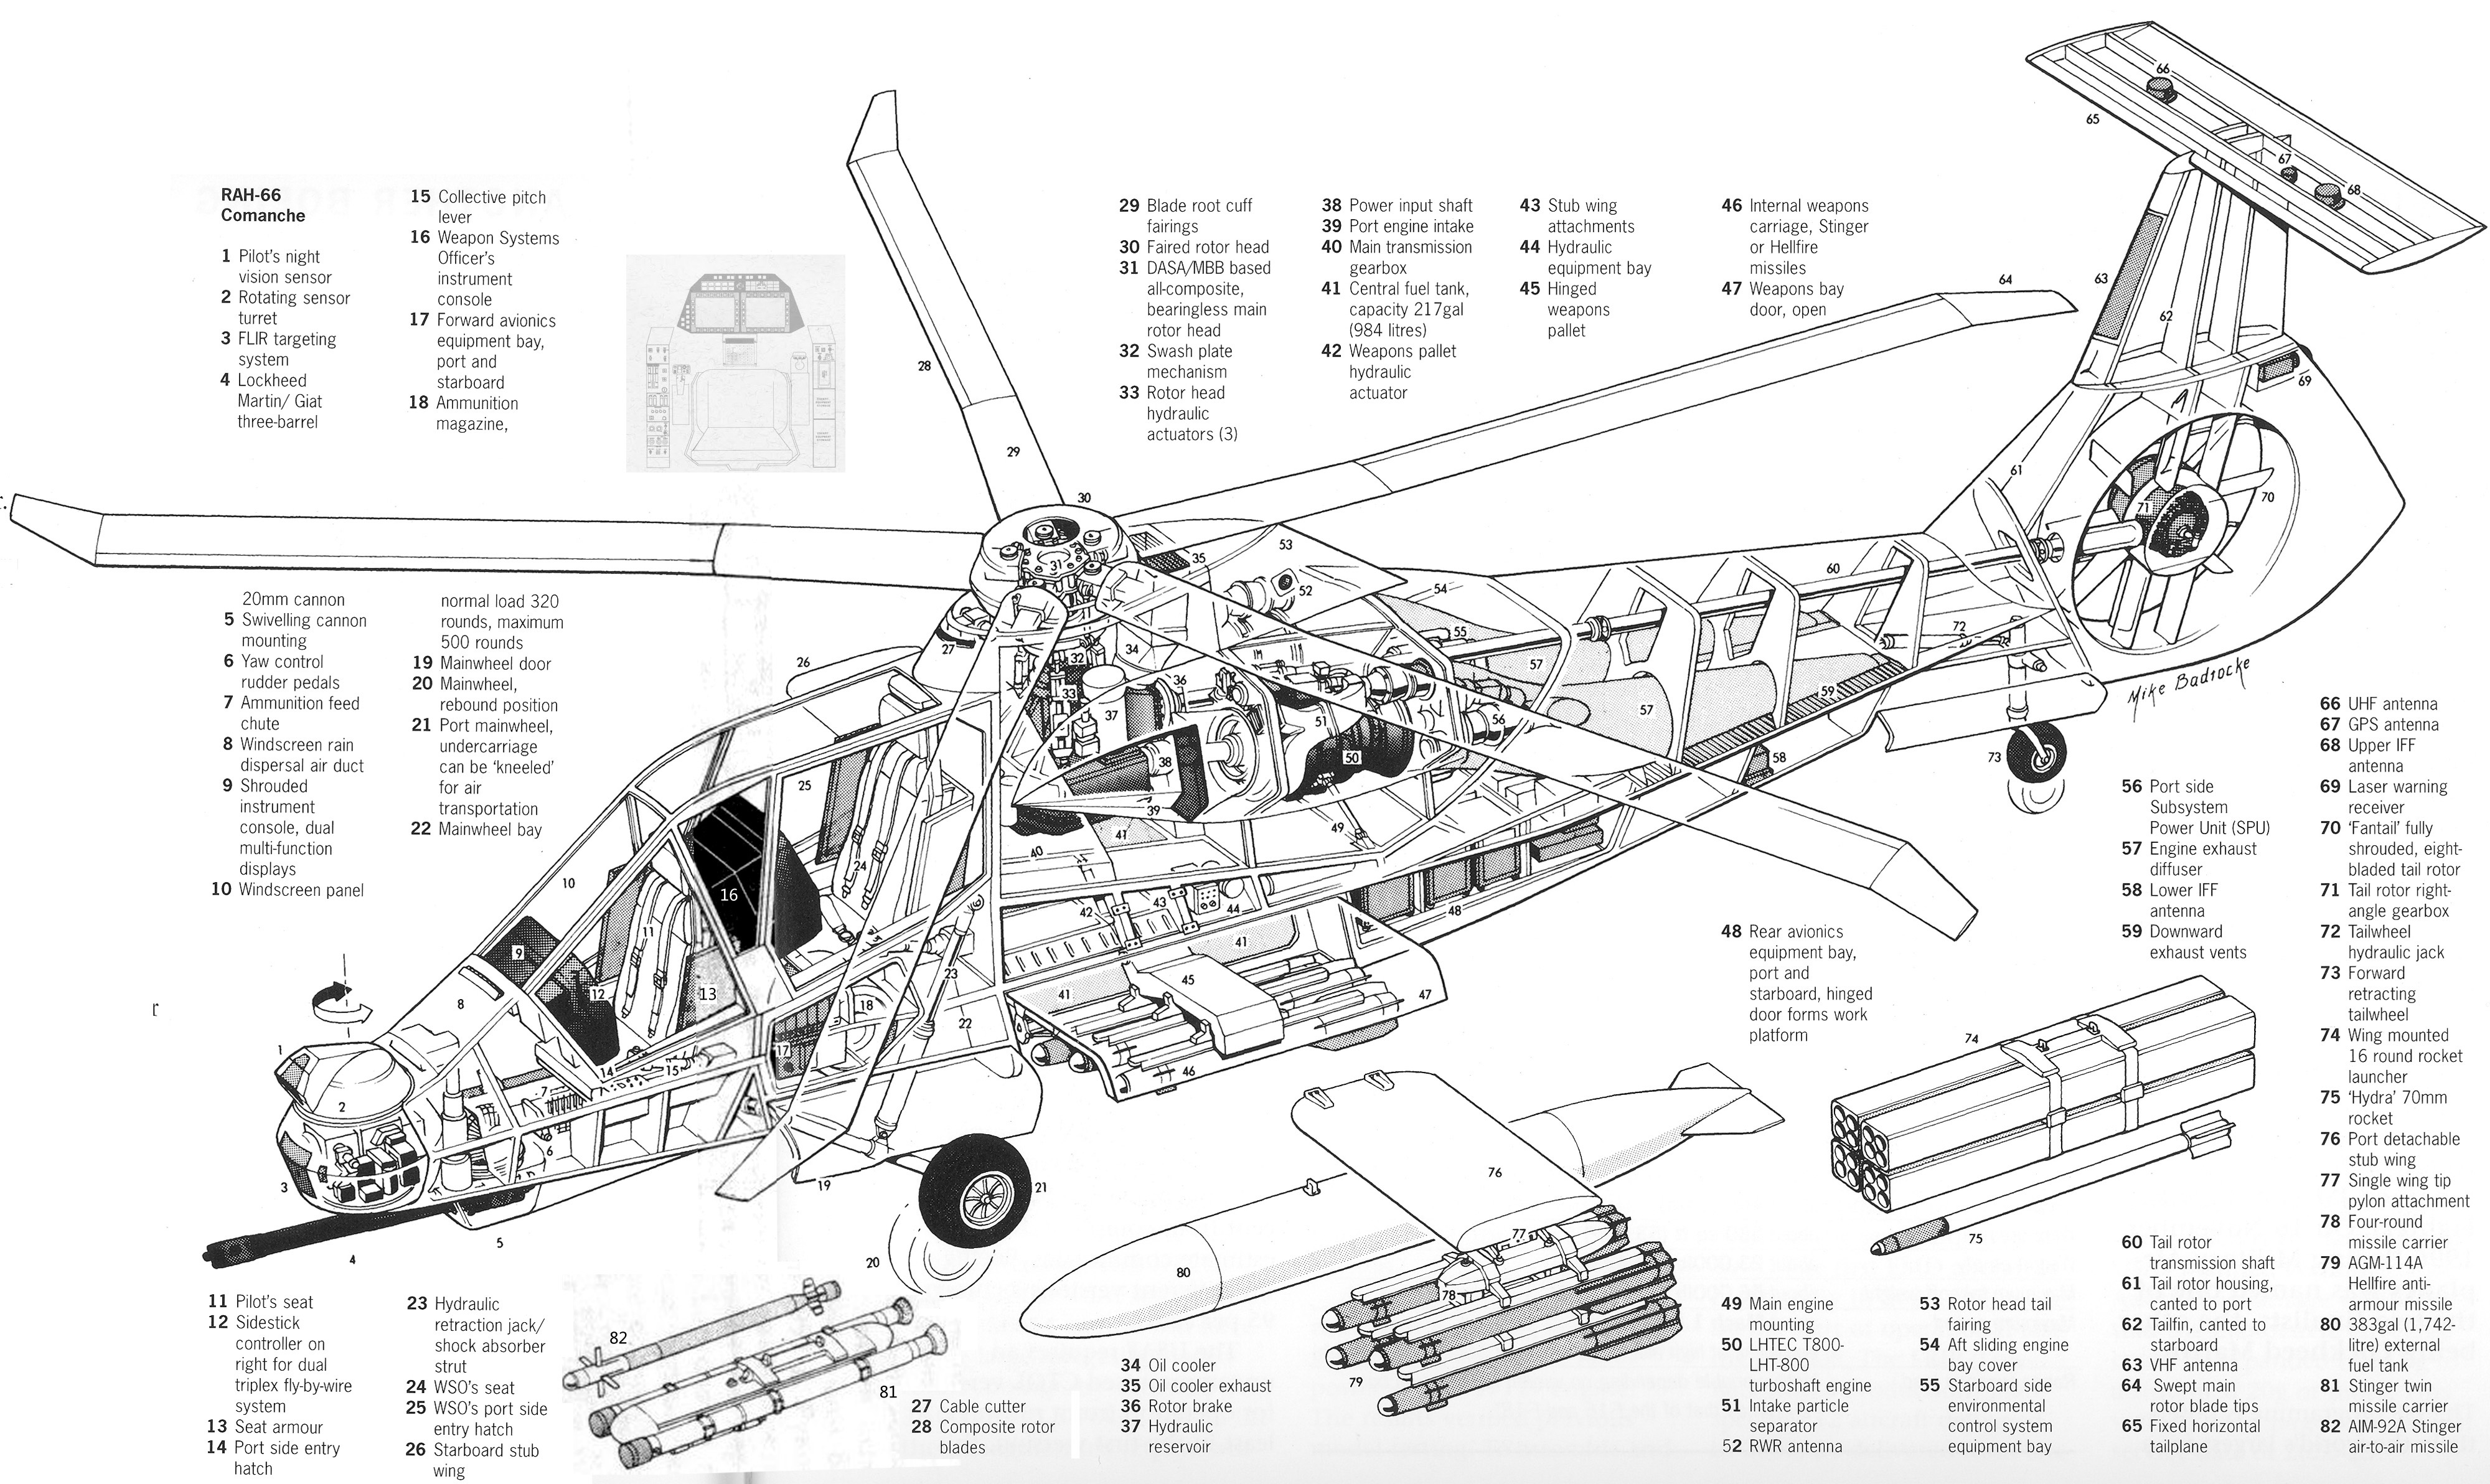 T Ah 99 Comanche Seats Should Have Both Gunner And Pilot Ability